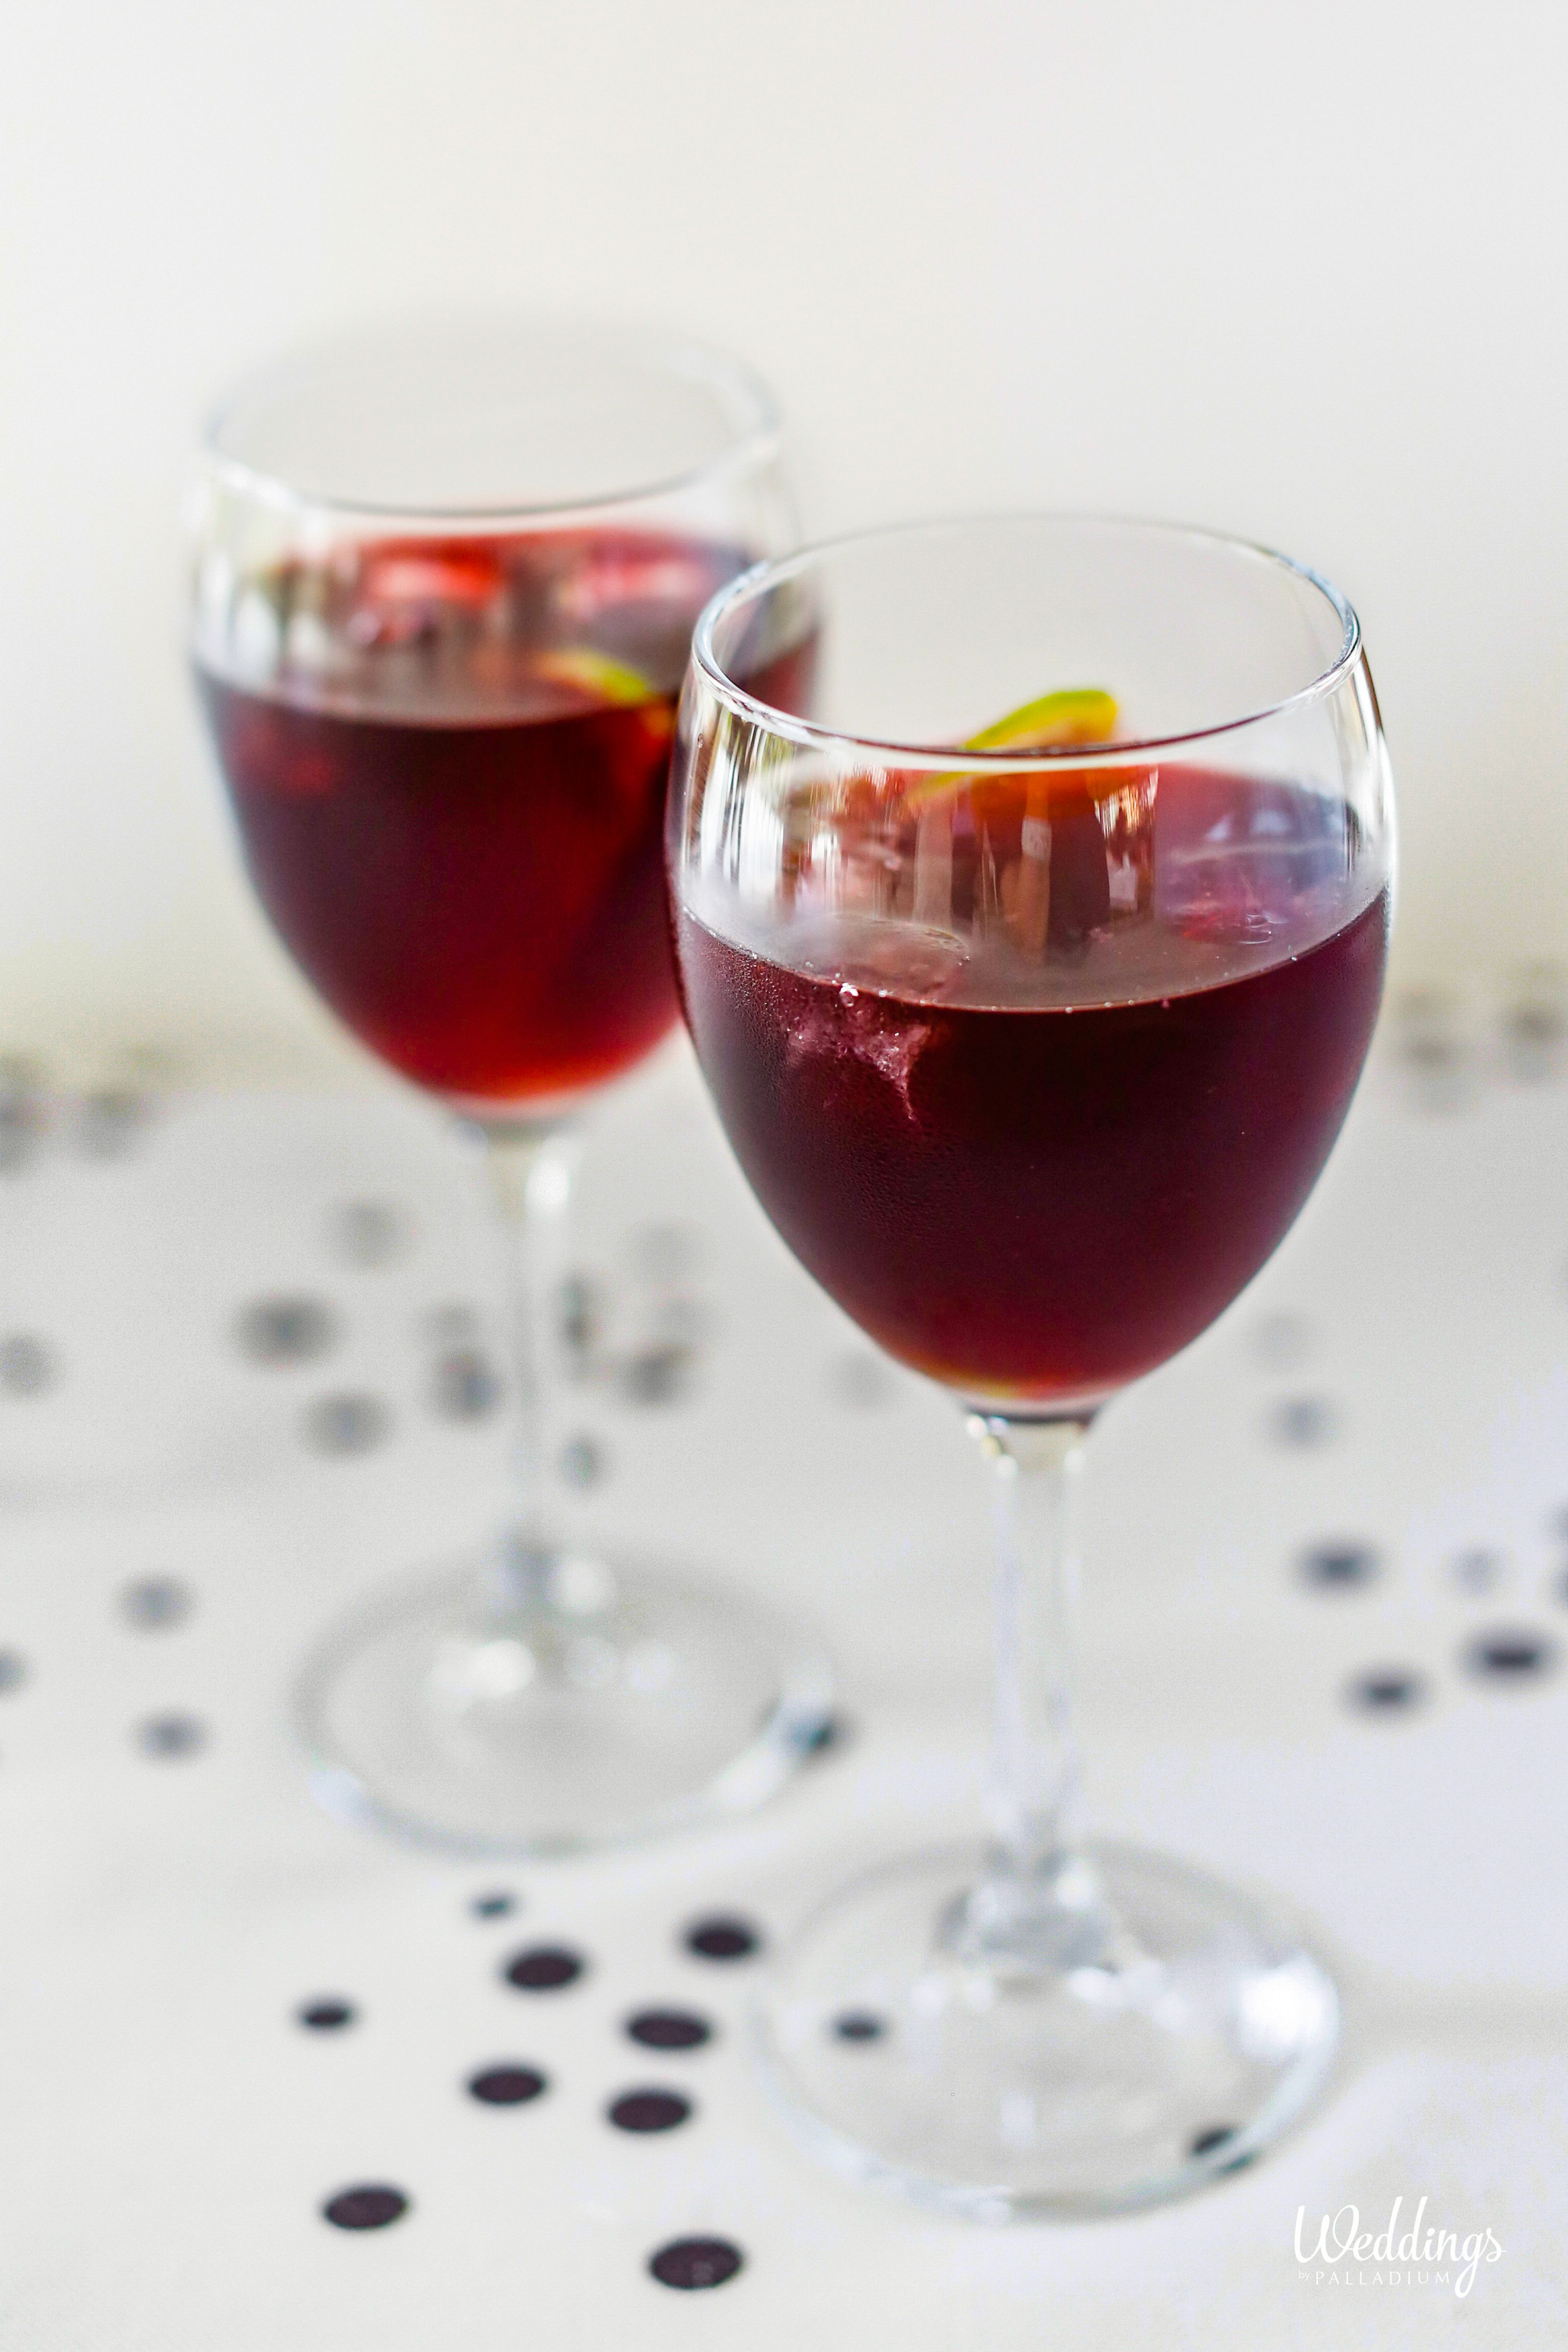 From Our Tapas And Sangria Bar From Our Range Of Food And Drink Stations Con Imagenes